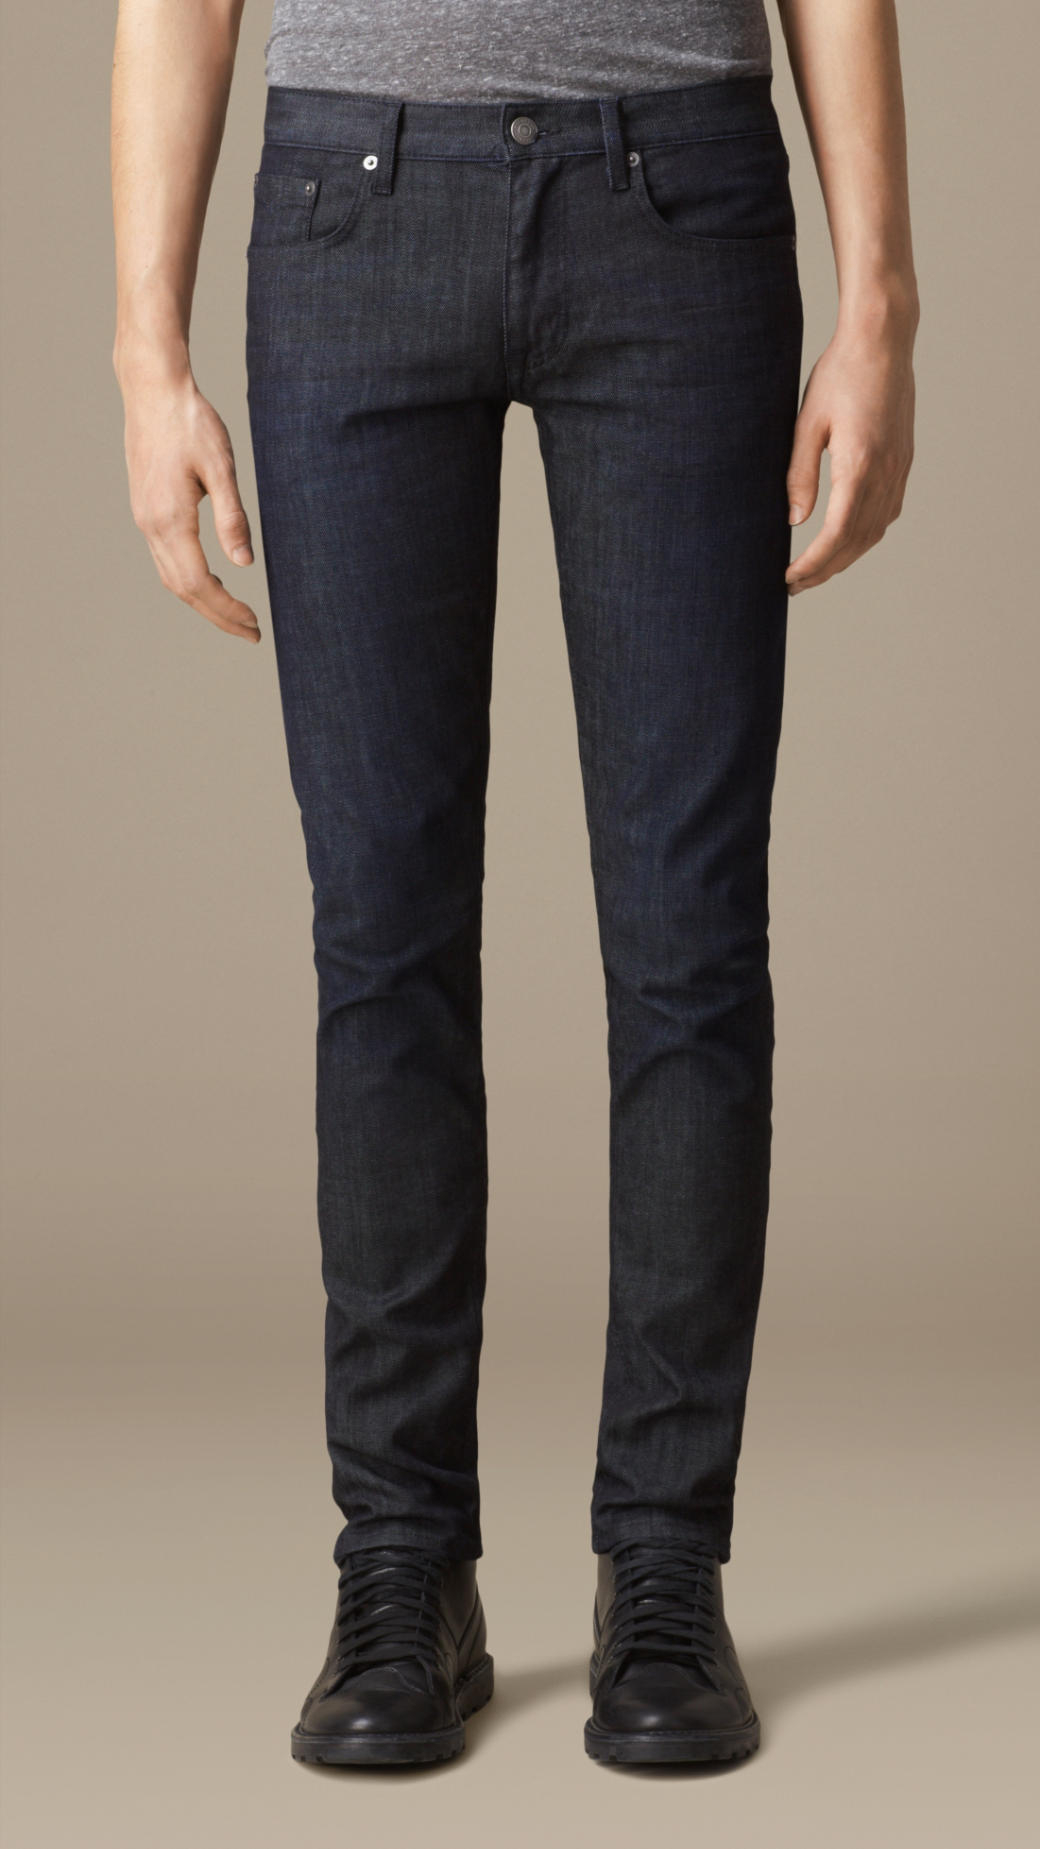 Burberry Shoreditch Midindigo Skinny Fit Jeans in Mid Indigo (Blue) for Men